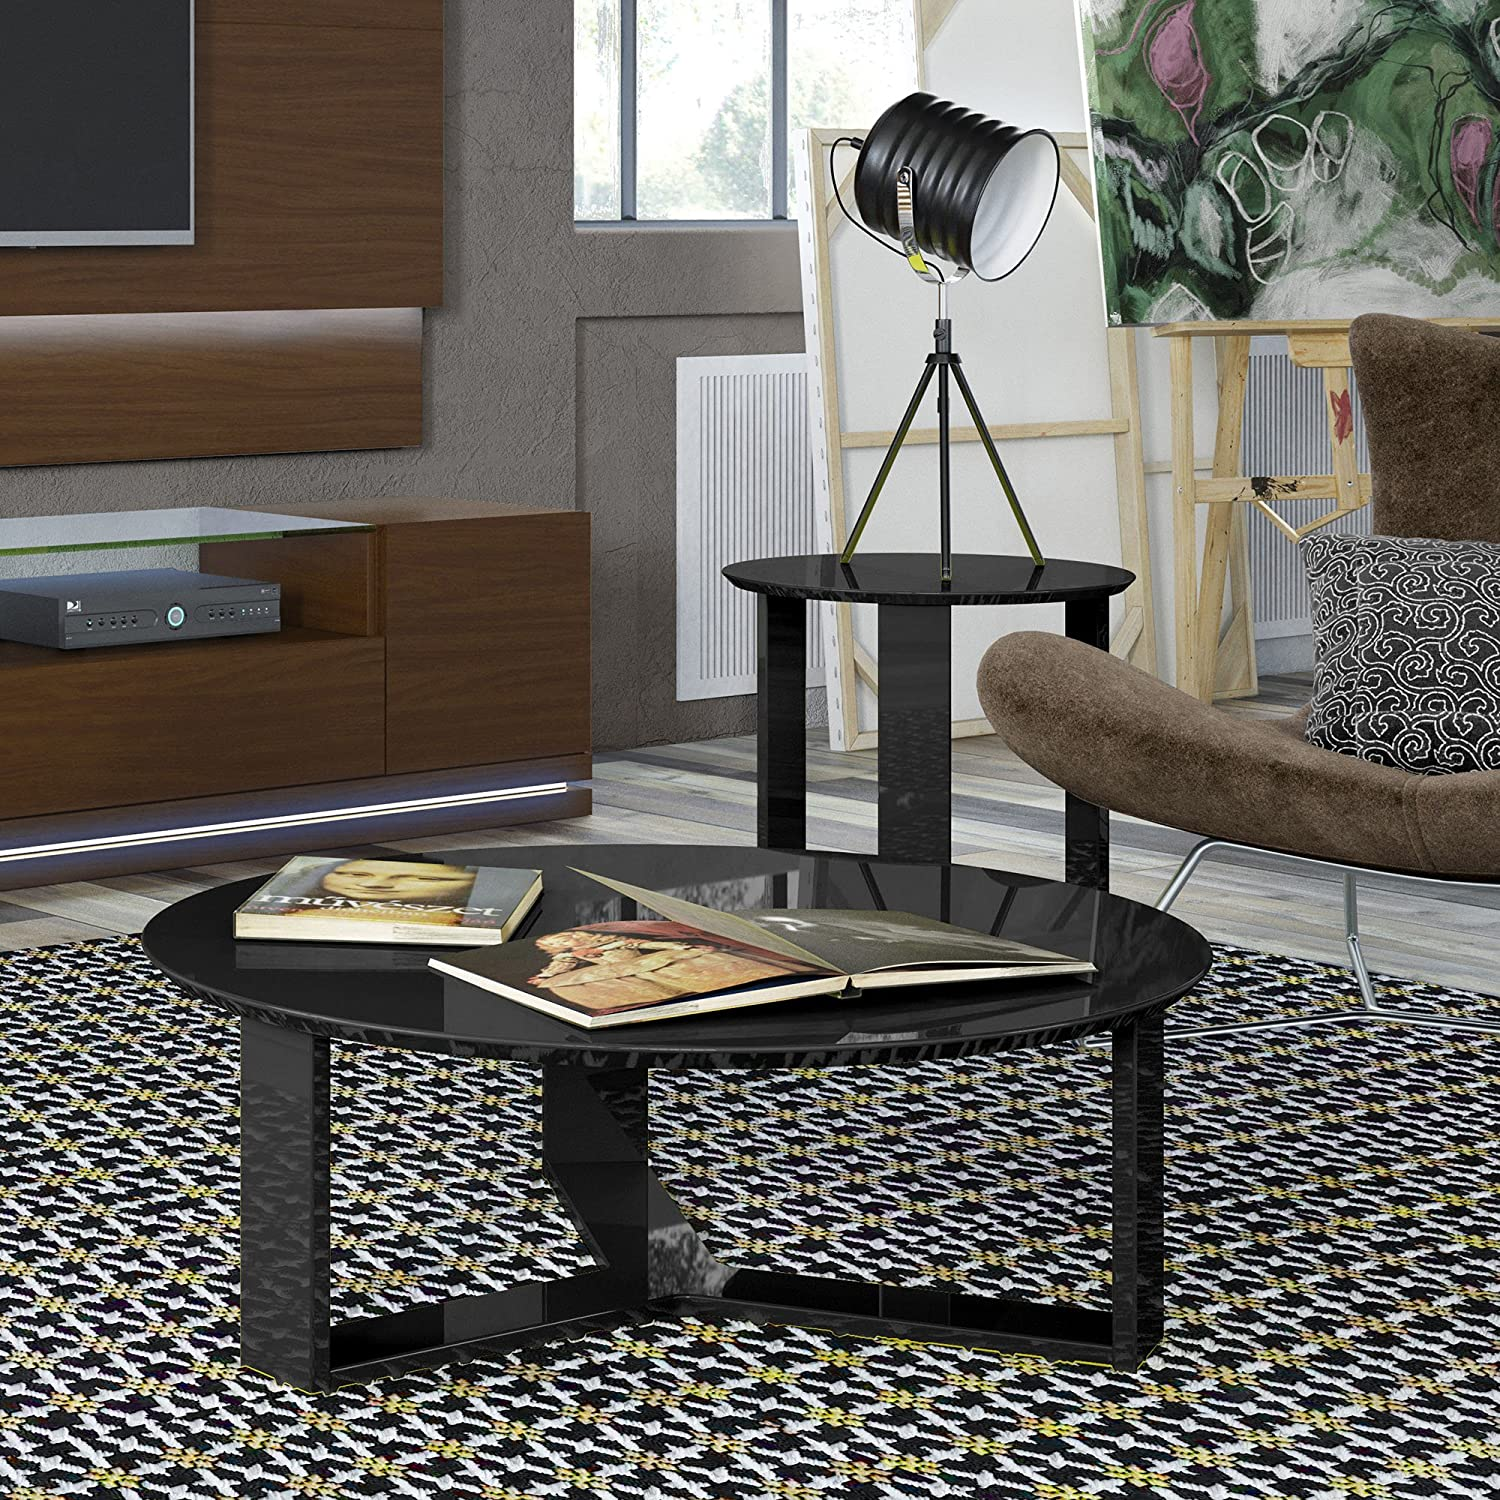 Amazon Manhattan fort Madison 1 0 Coffee Table Collection